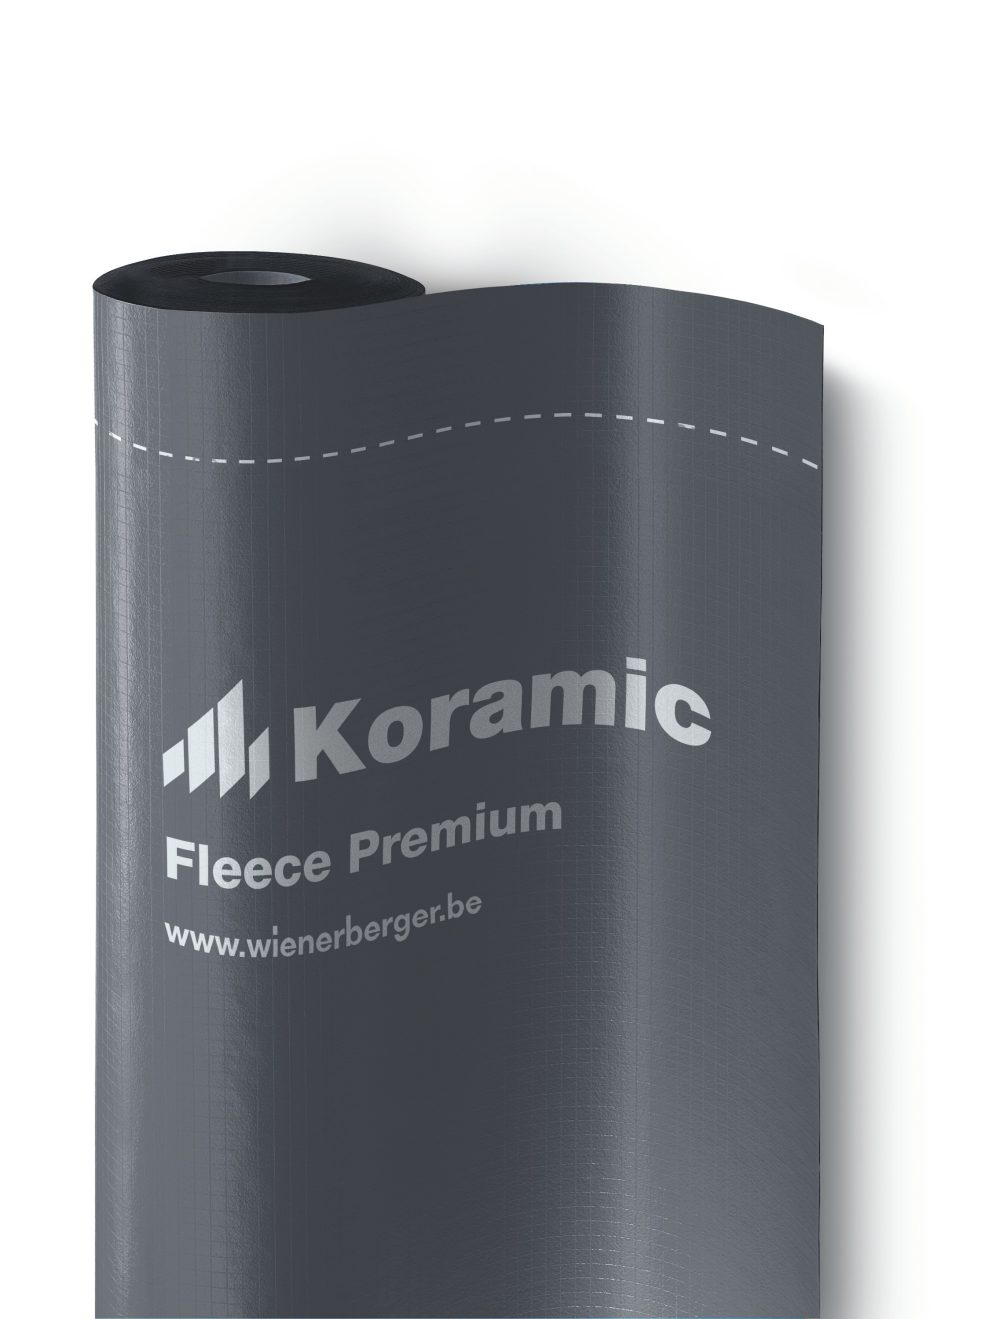 Koramic Fleece Premium